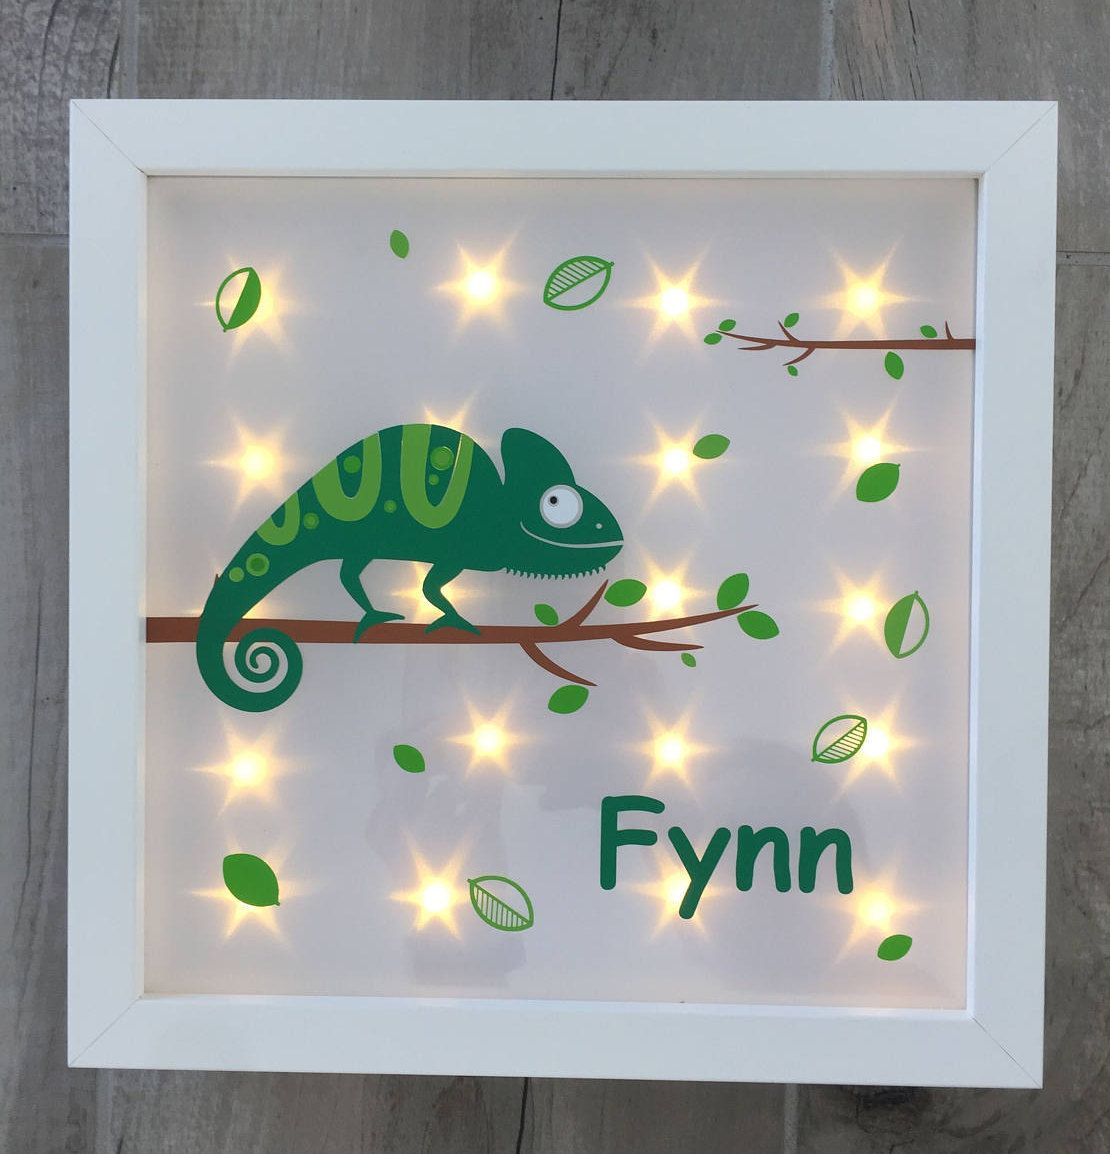 Beleuchtete Bilderrahmen Illuminated Picture Frame With Chameleon And Night Light